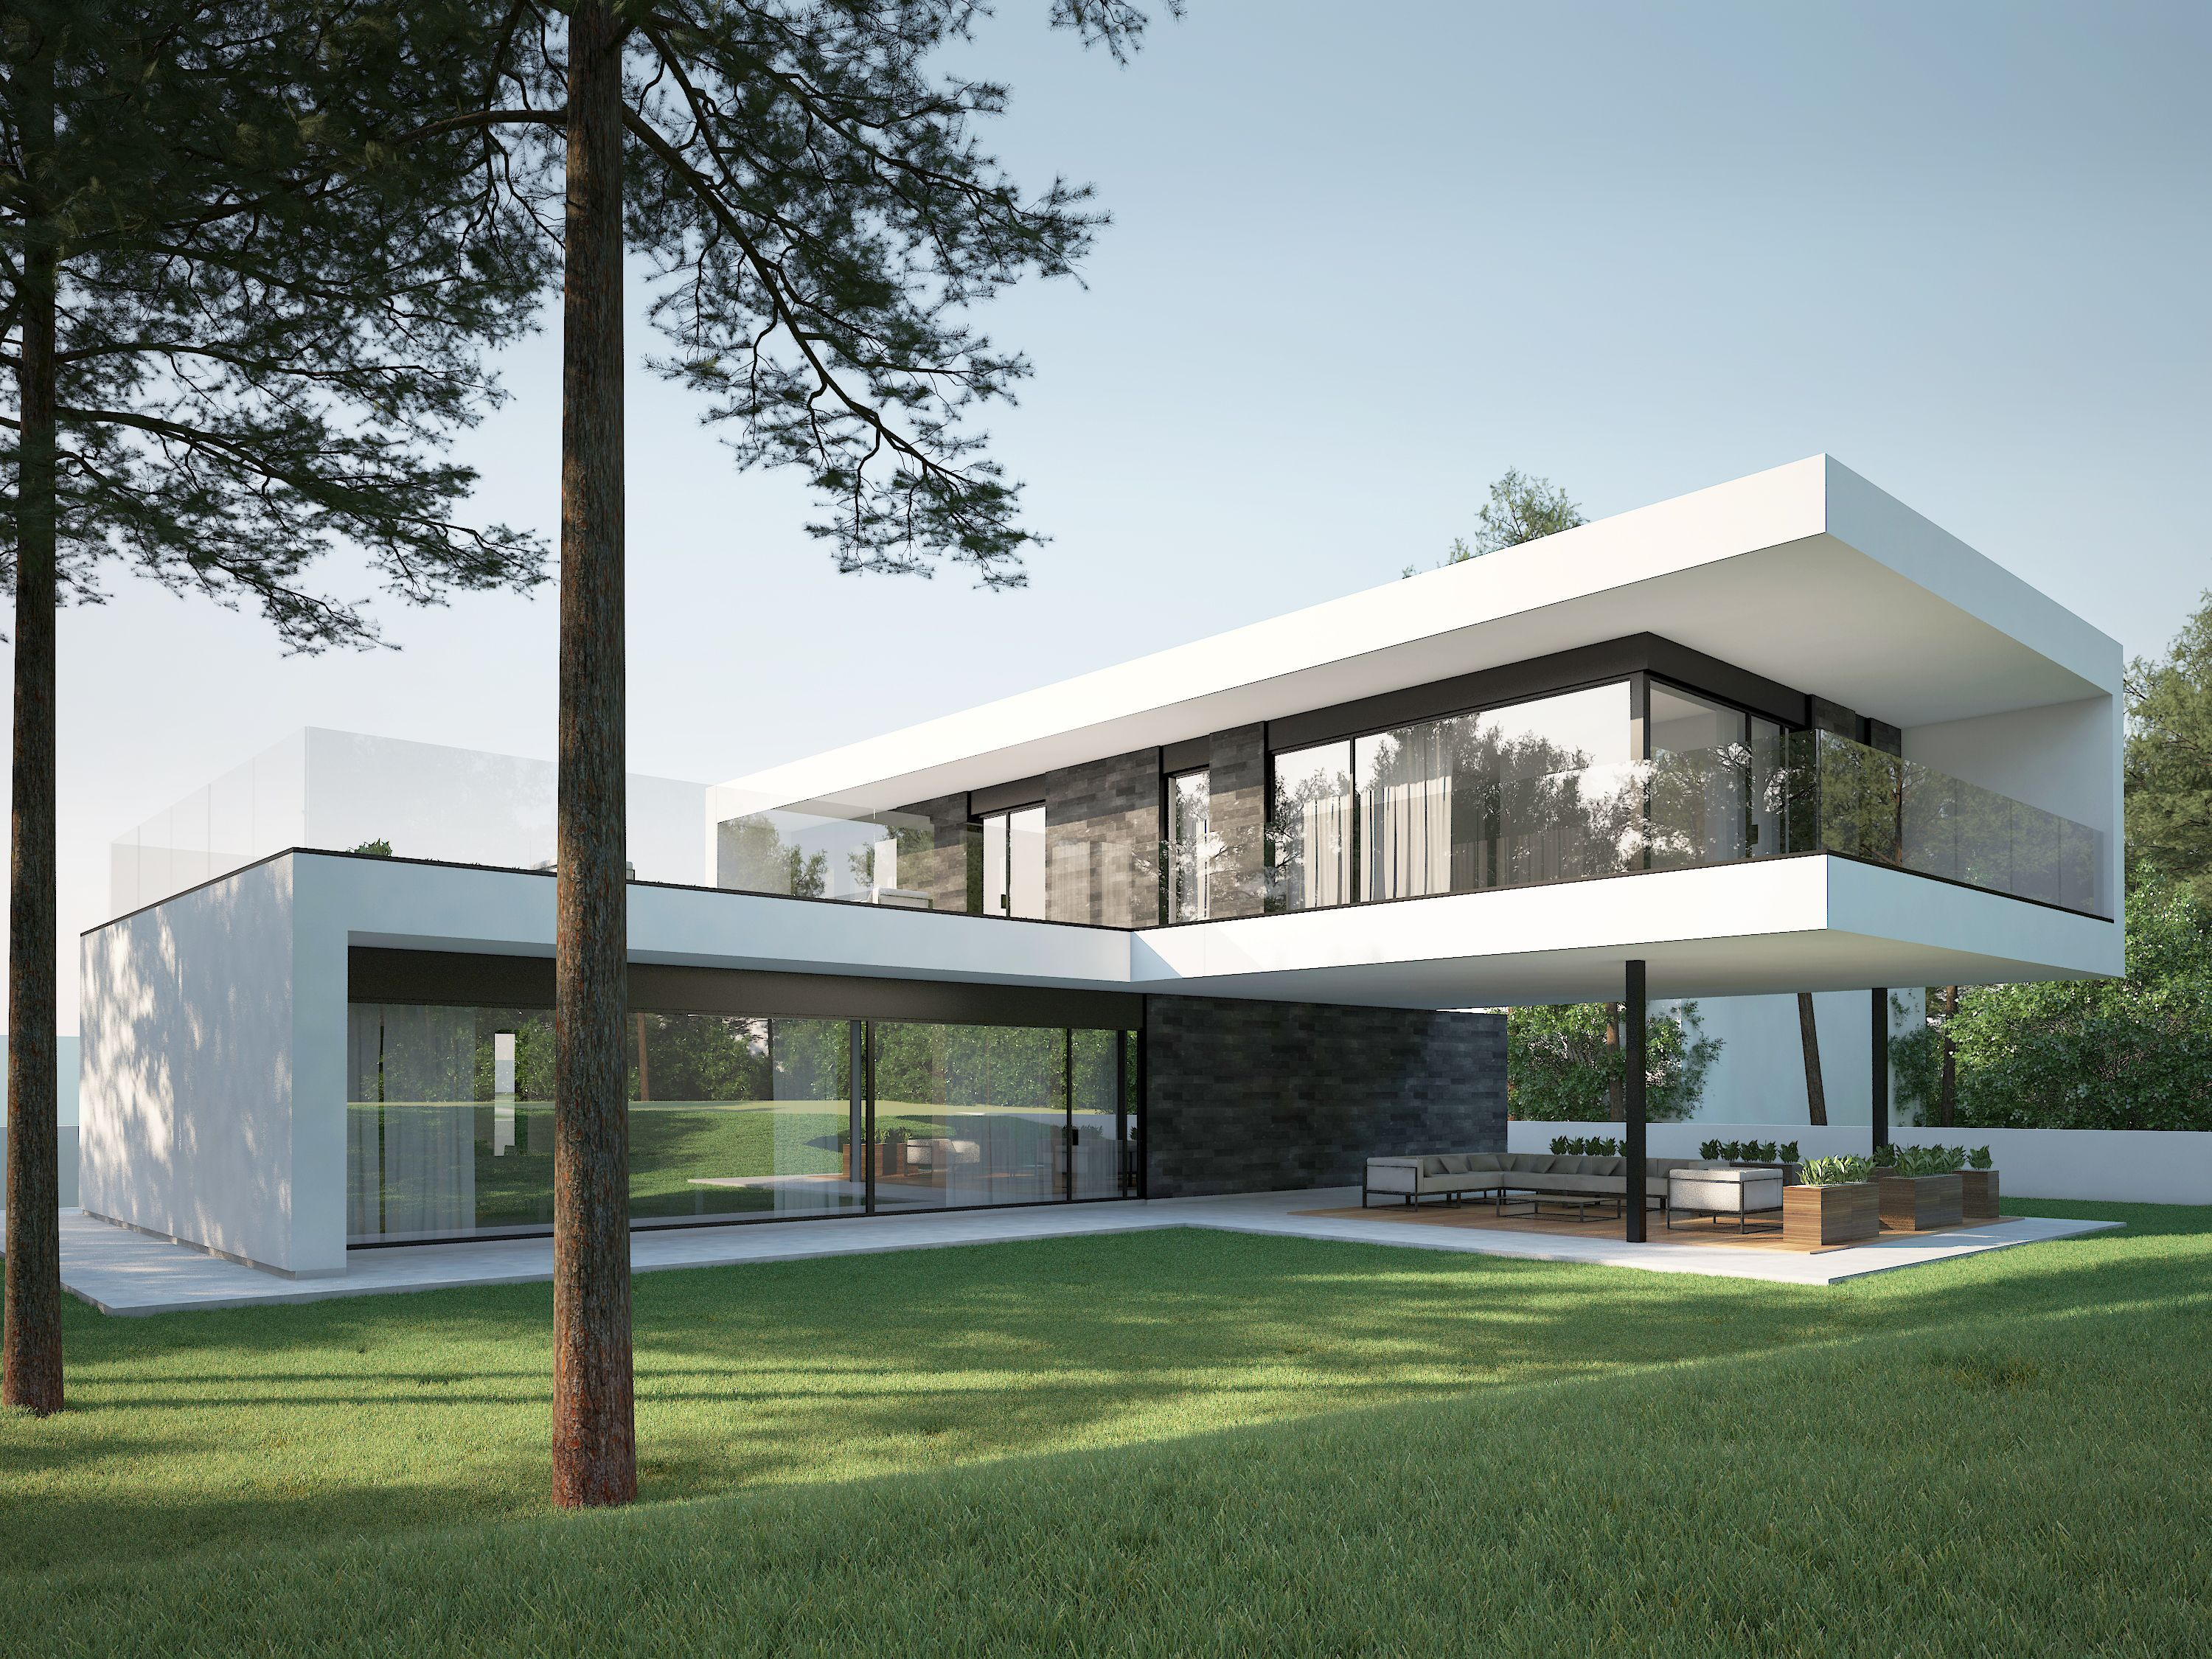 Modern House In Kaunas By NG Architects Wwwngarchitectslt Robots - Minecraft hauser modern holz